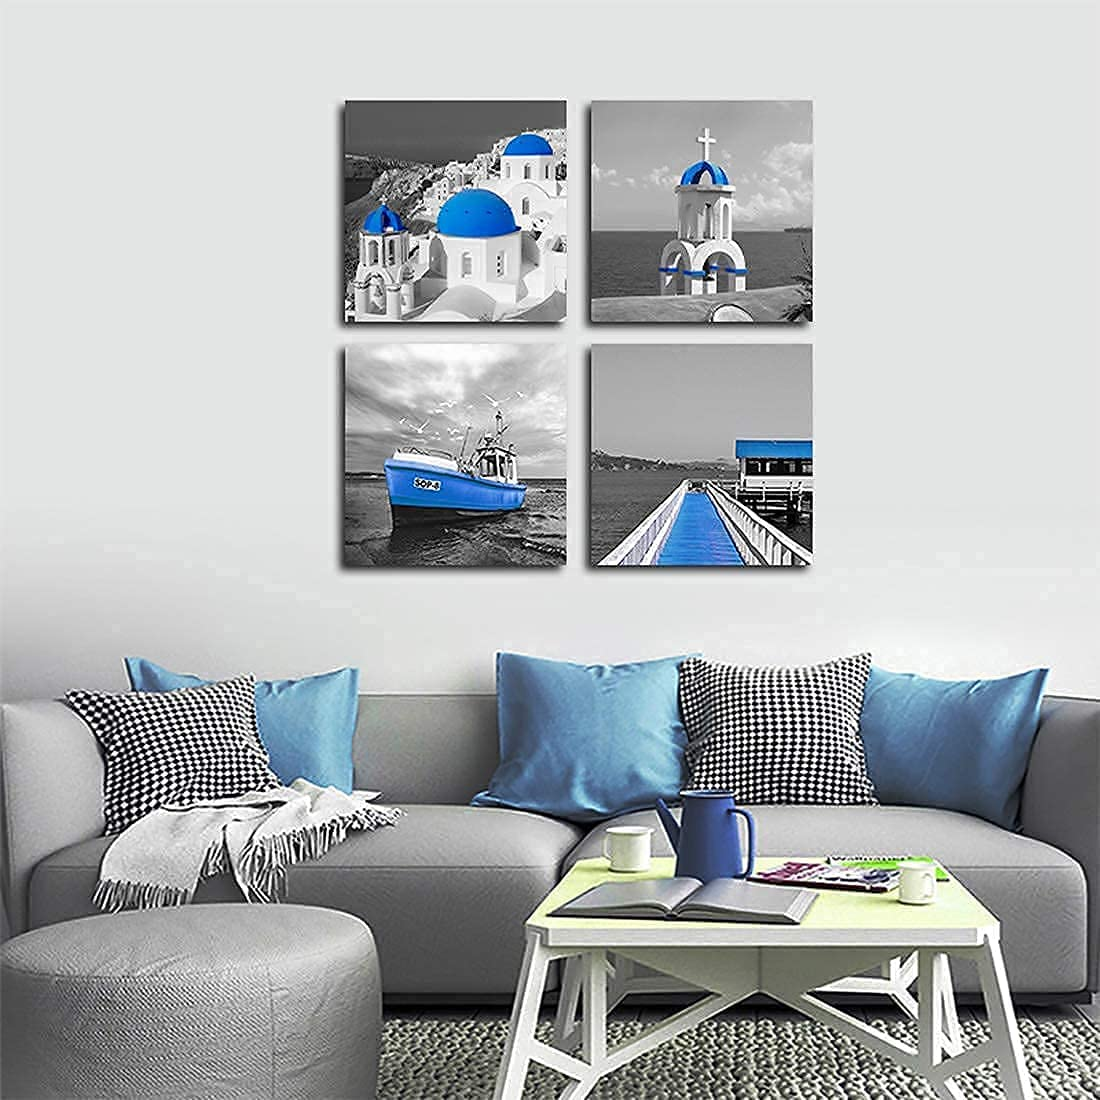 Modern Black and White Wall Art Greece Santorini Beach Ocean Mediterranean River Boat Picture Aegean Sea Wall Decor Landscape Building Canvas Prints for Home Office Bathroom Set of 4 12 x12 In Frame